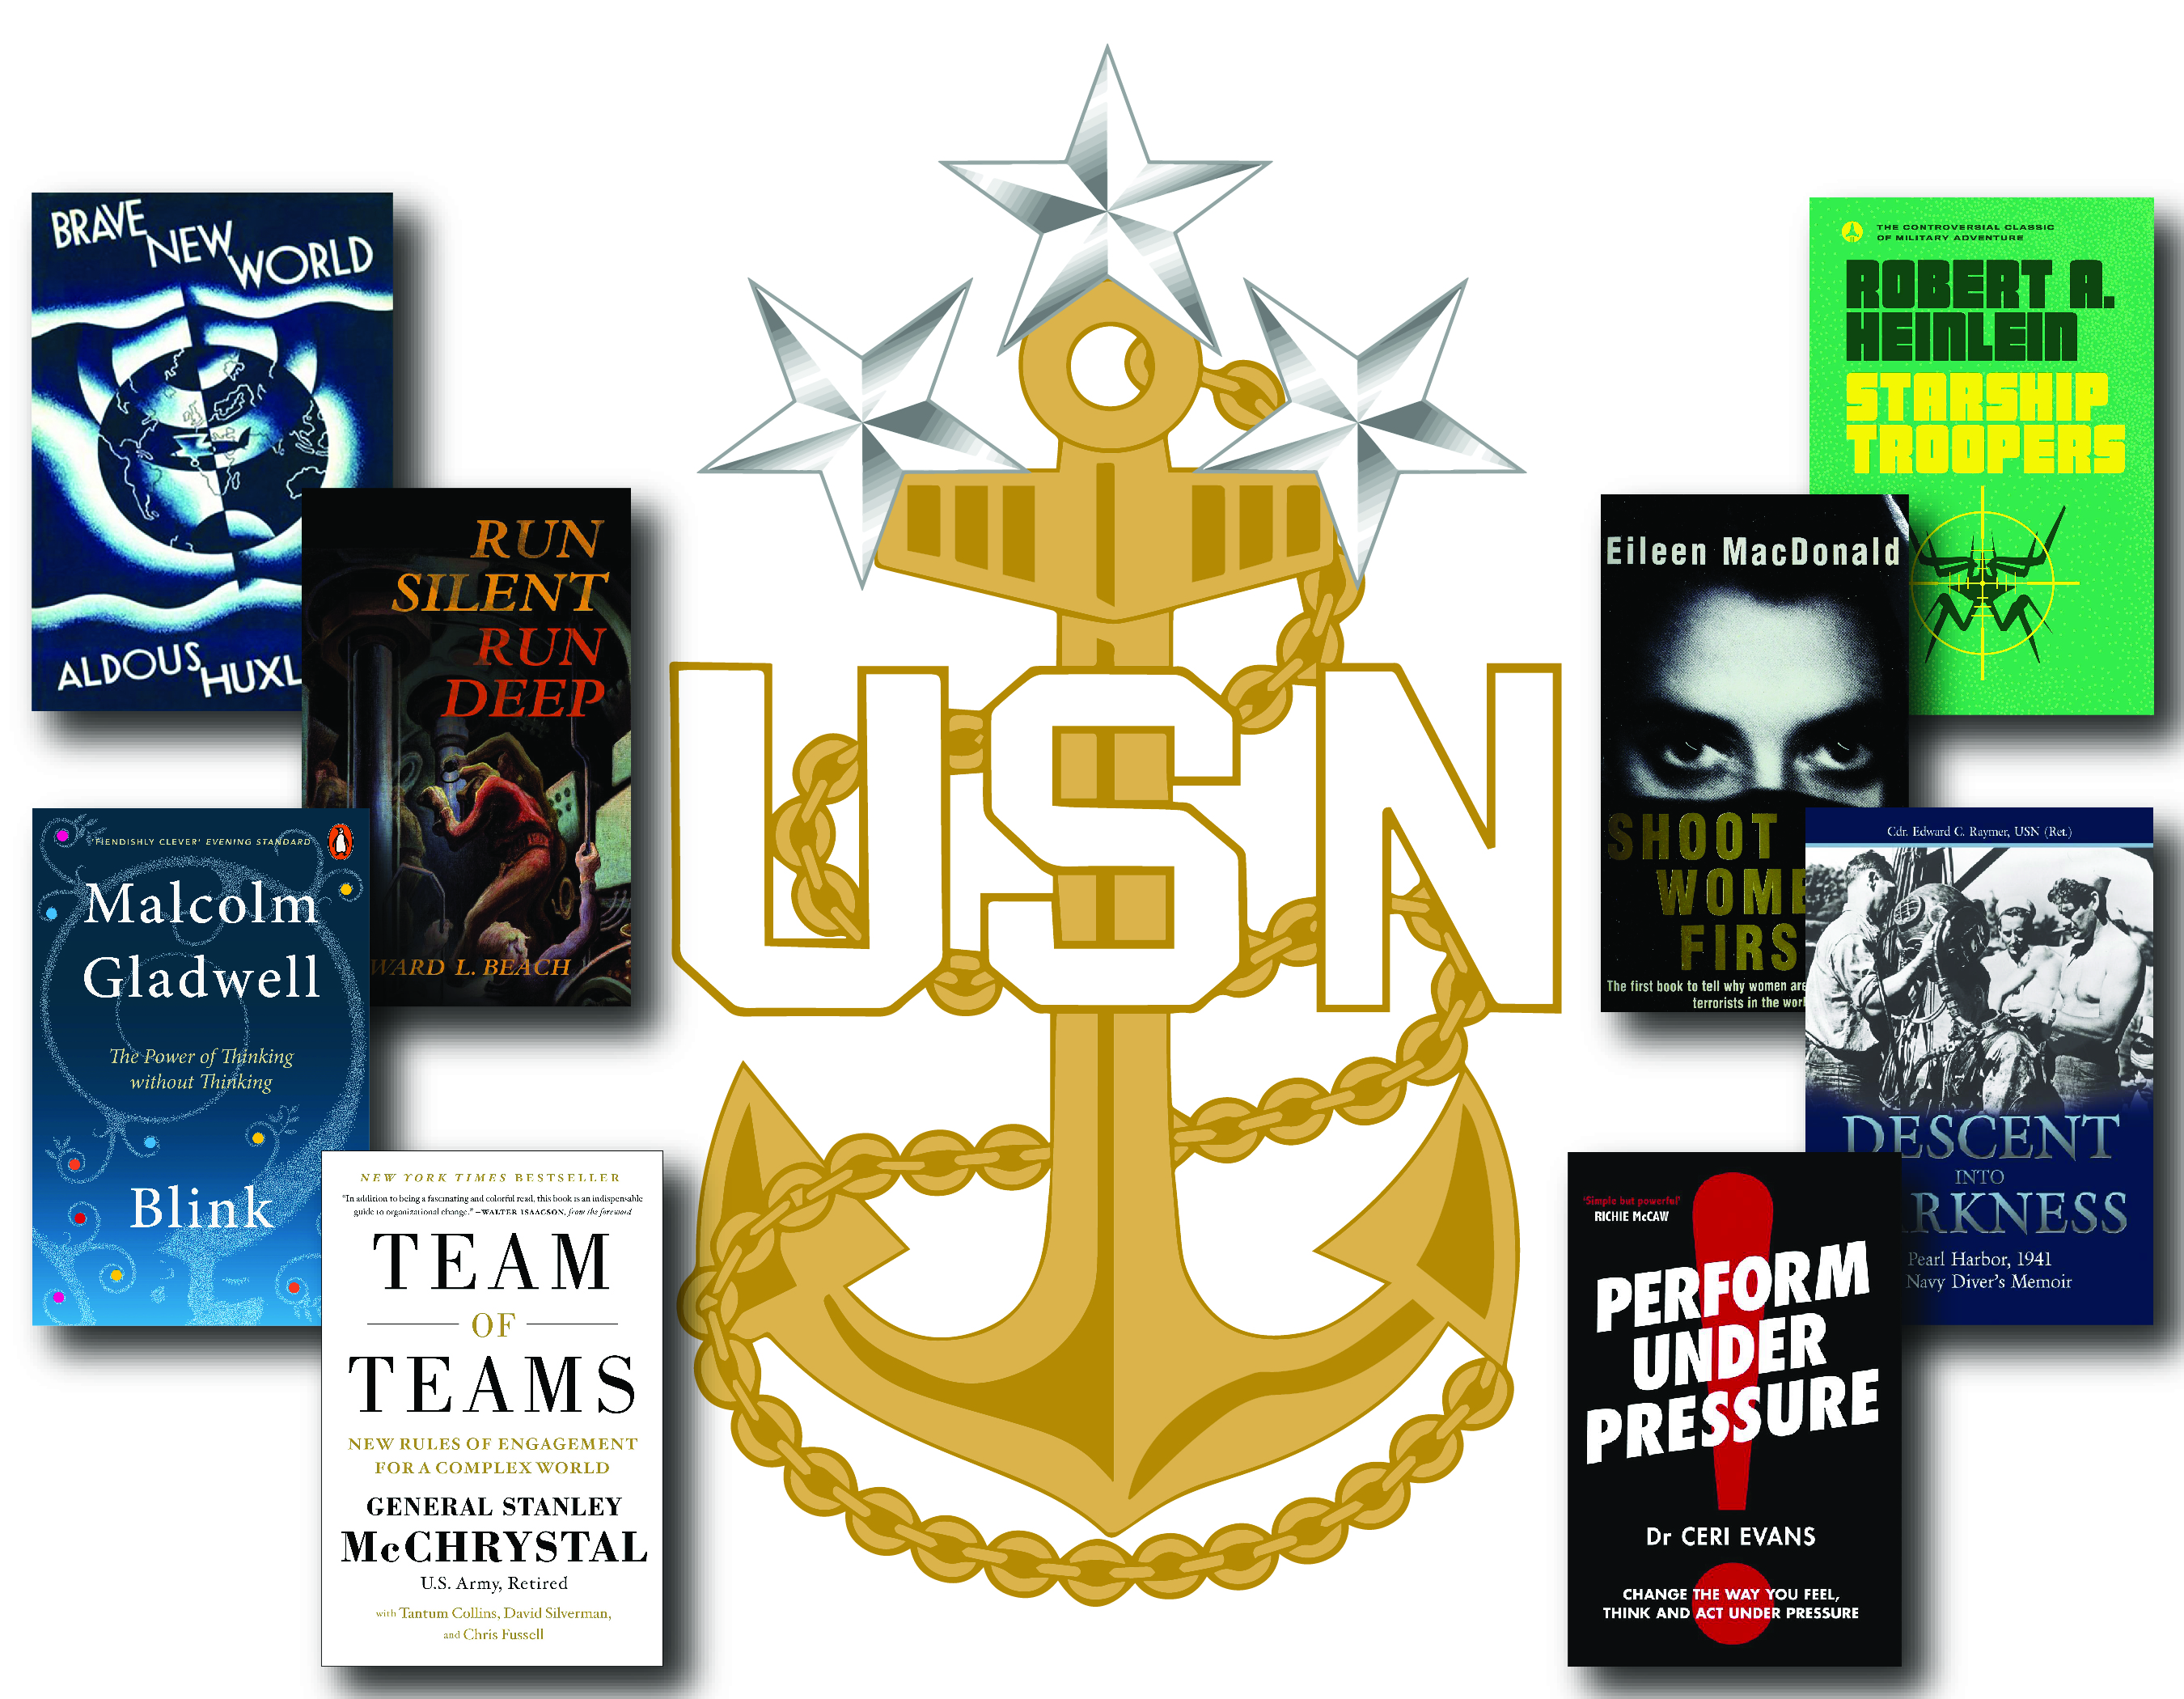 MCPON suggestion of book reading covers